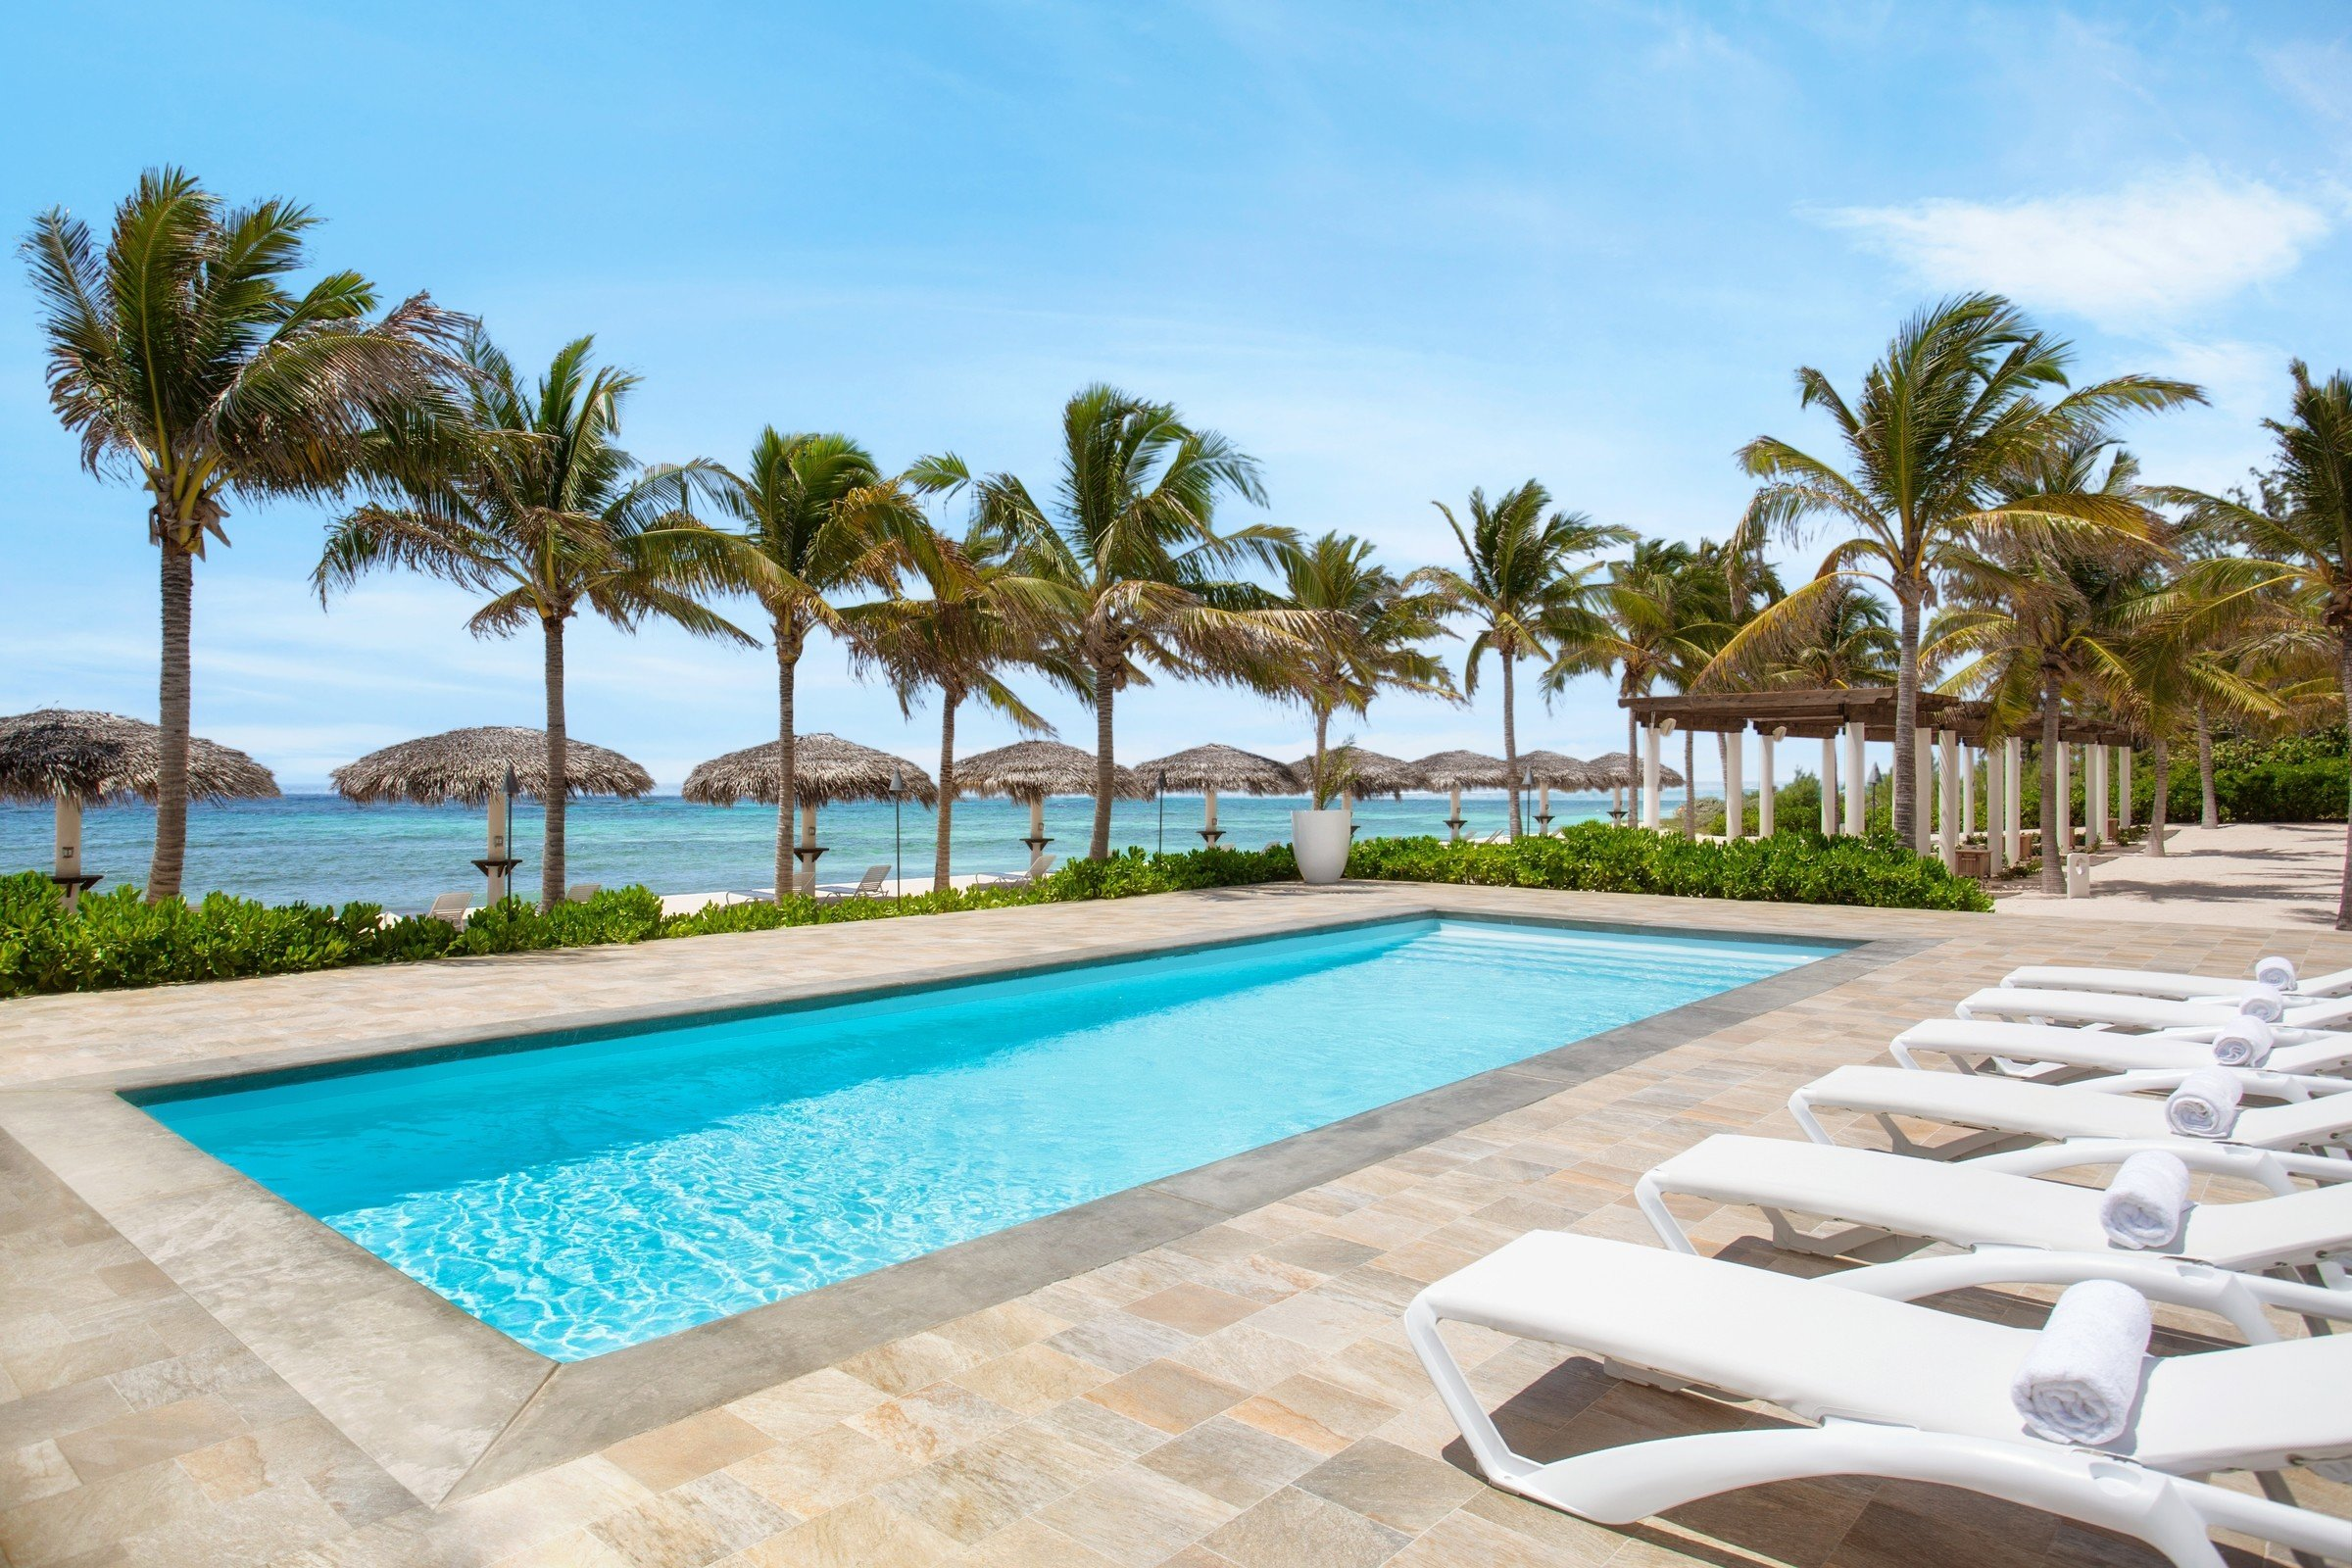 Hotels outdoor tree sky Beach Pool ground Resort palm swimming pool property chair building leisure lawn caribbean estate vacation lined Villa condominium real estate swimming sandy Deck shade